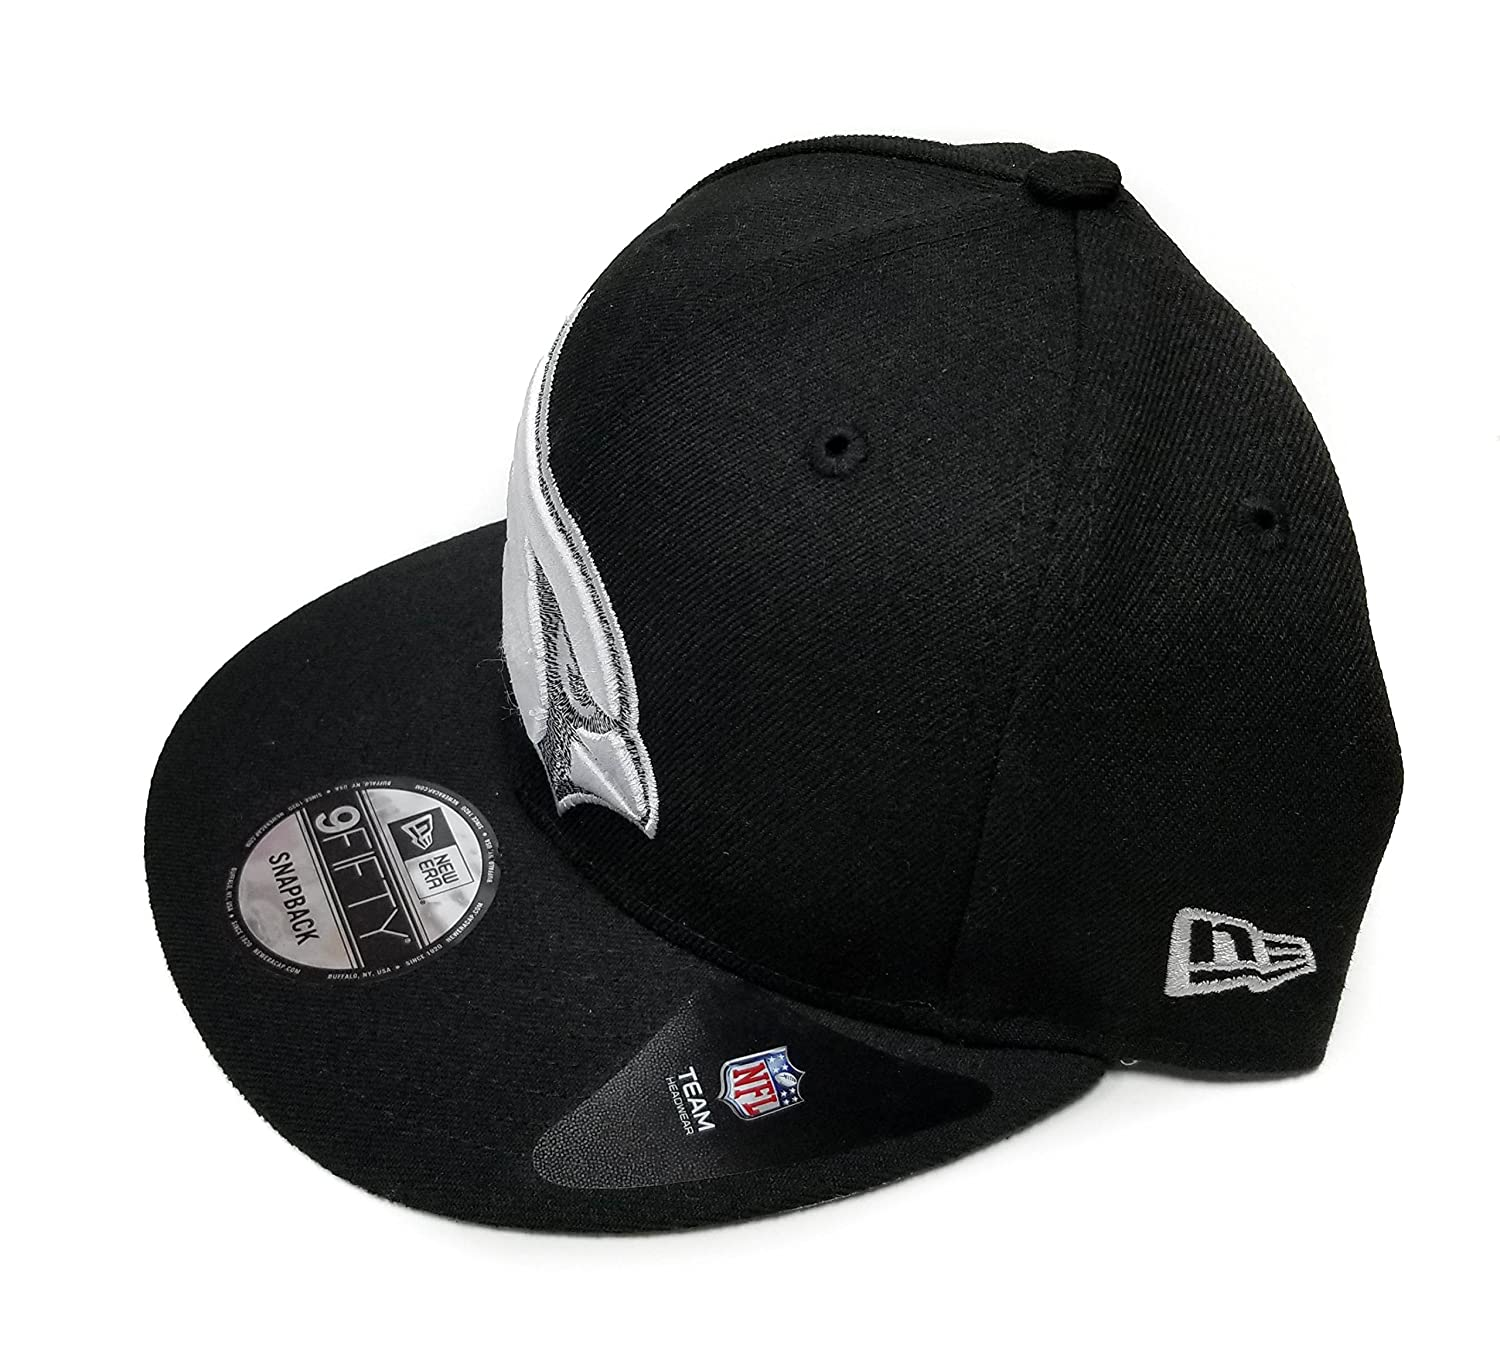 Amazon.com : New Era Arizona Cardinals 9Fifty Black & White Logo Adjustable Snapback Hat NFL : Sports & Outdoors